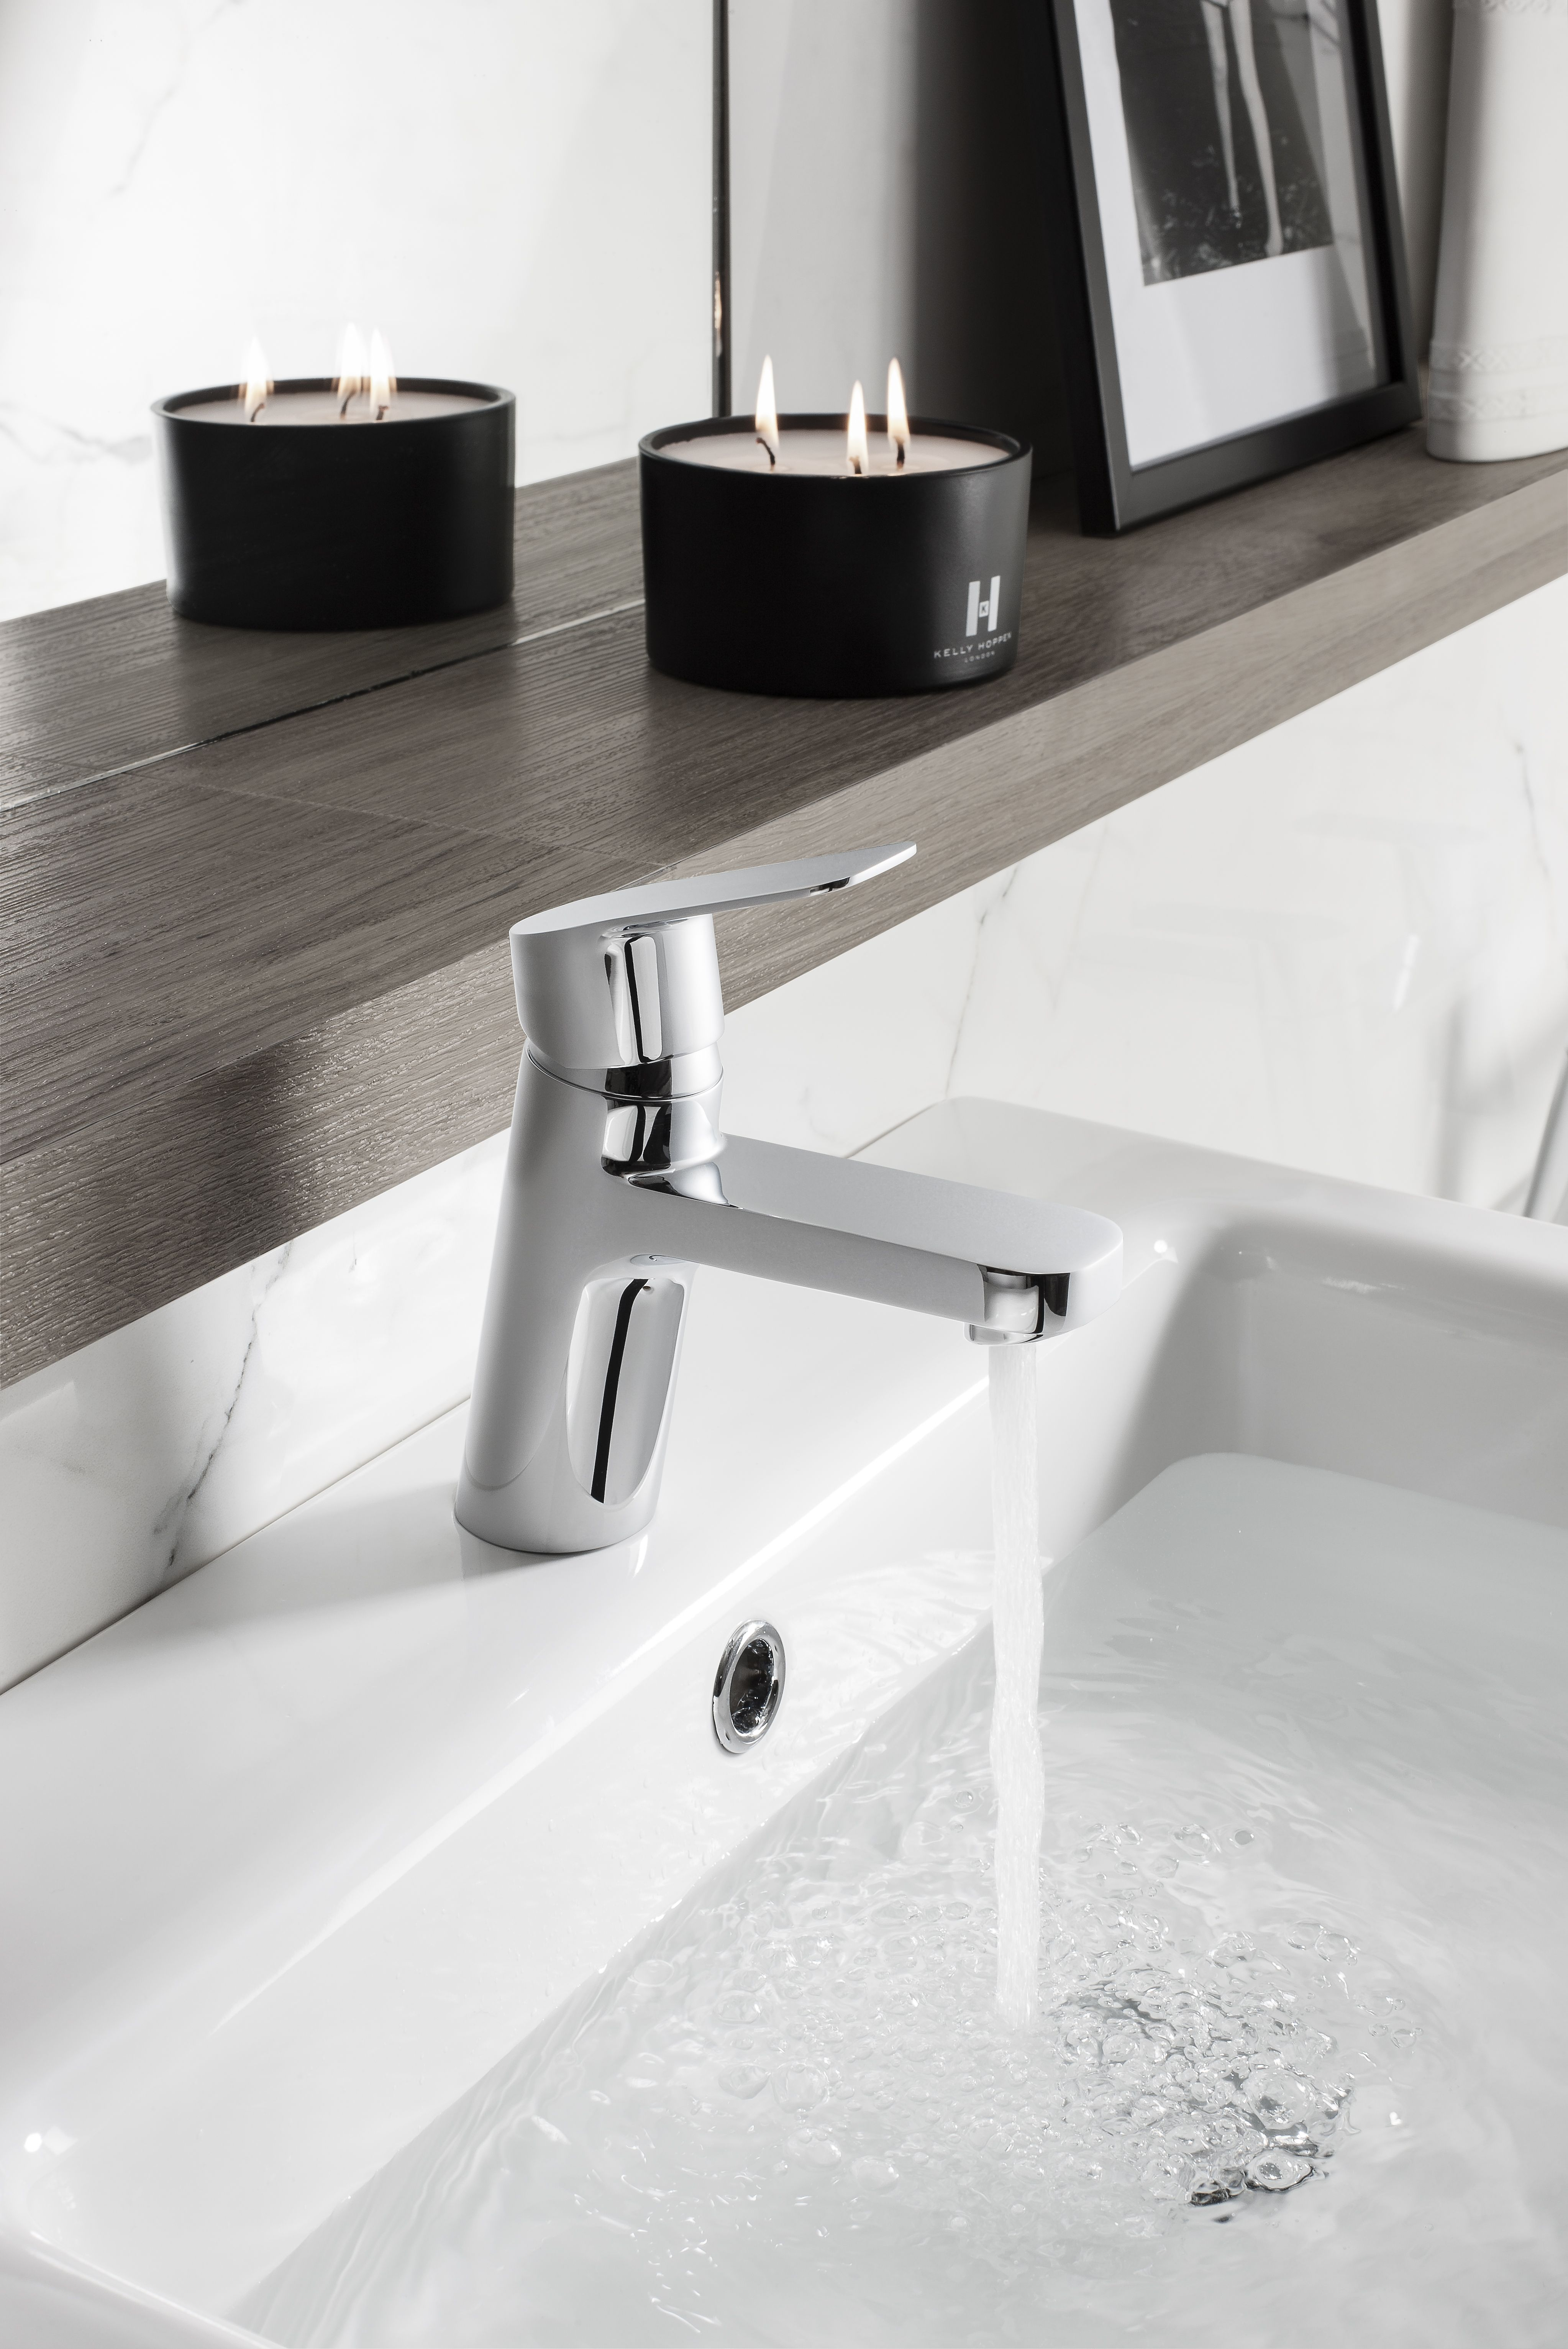 Pin by Noble Installations on Bathroom Taps & Mixers Inspirations ...